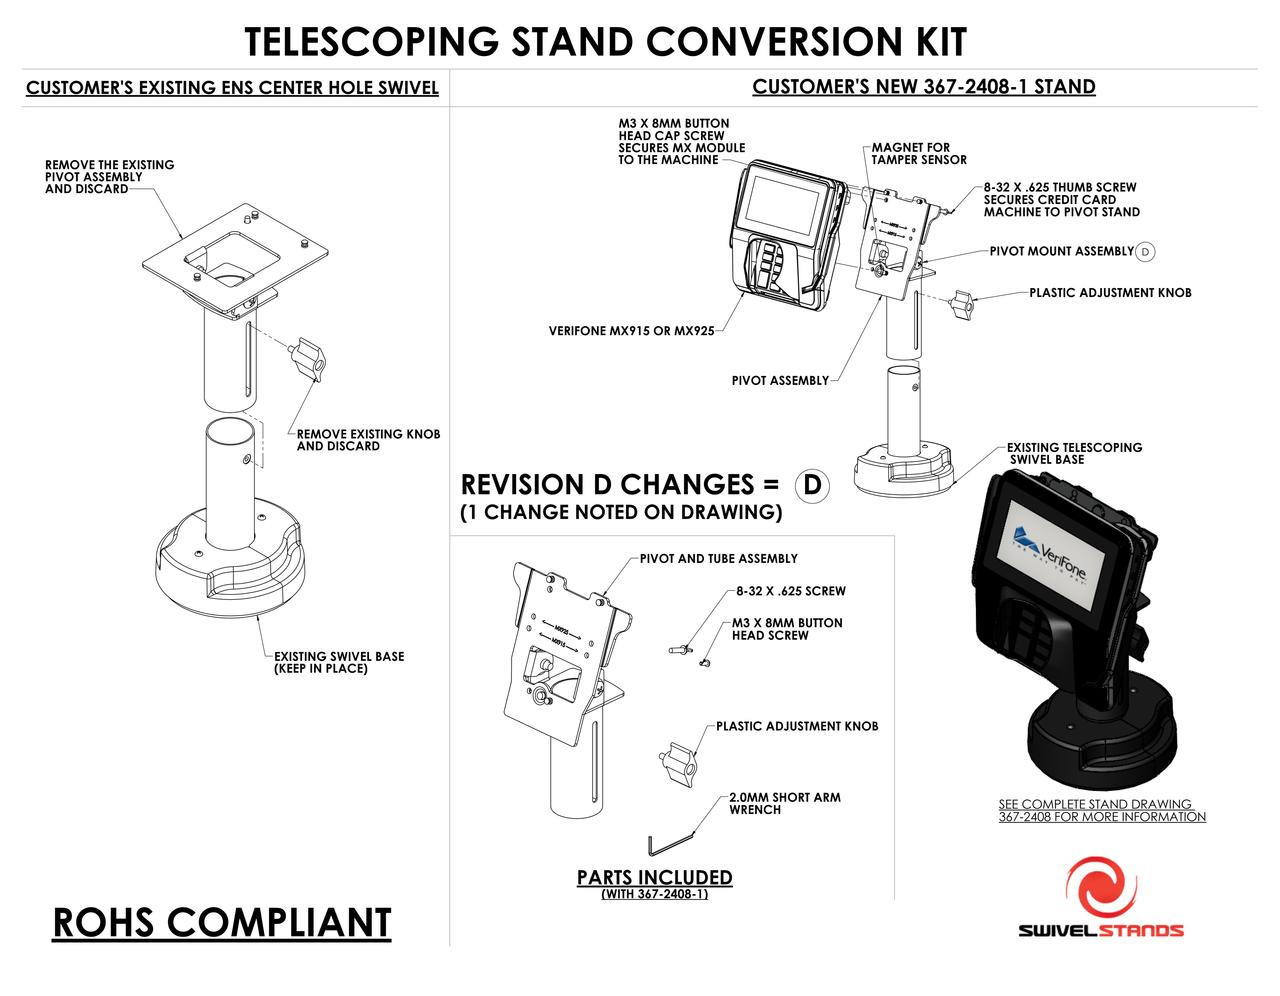 Verifone MX915 MX925 Conversion Kit Telescoping to MX915 MX925 by Swivel Stands